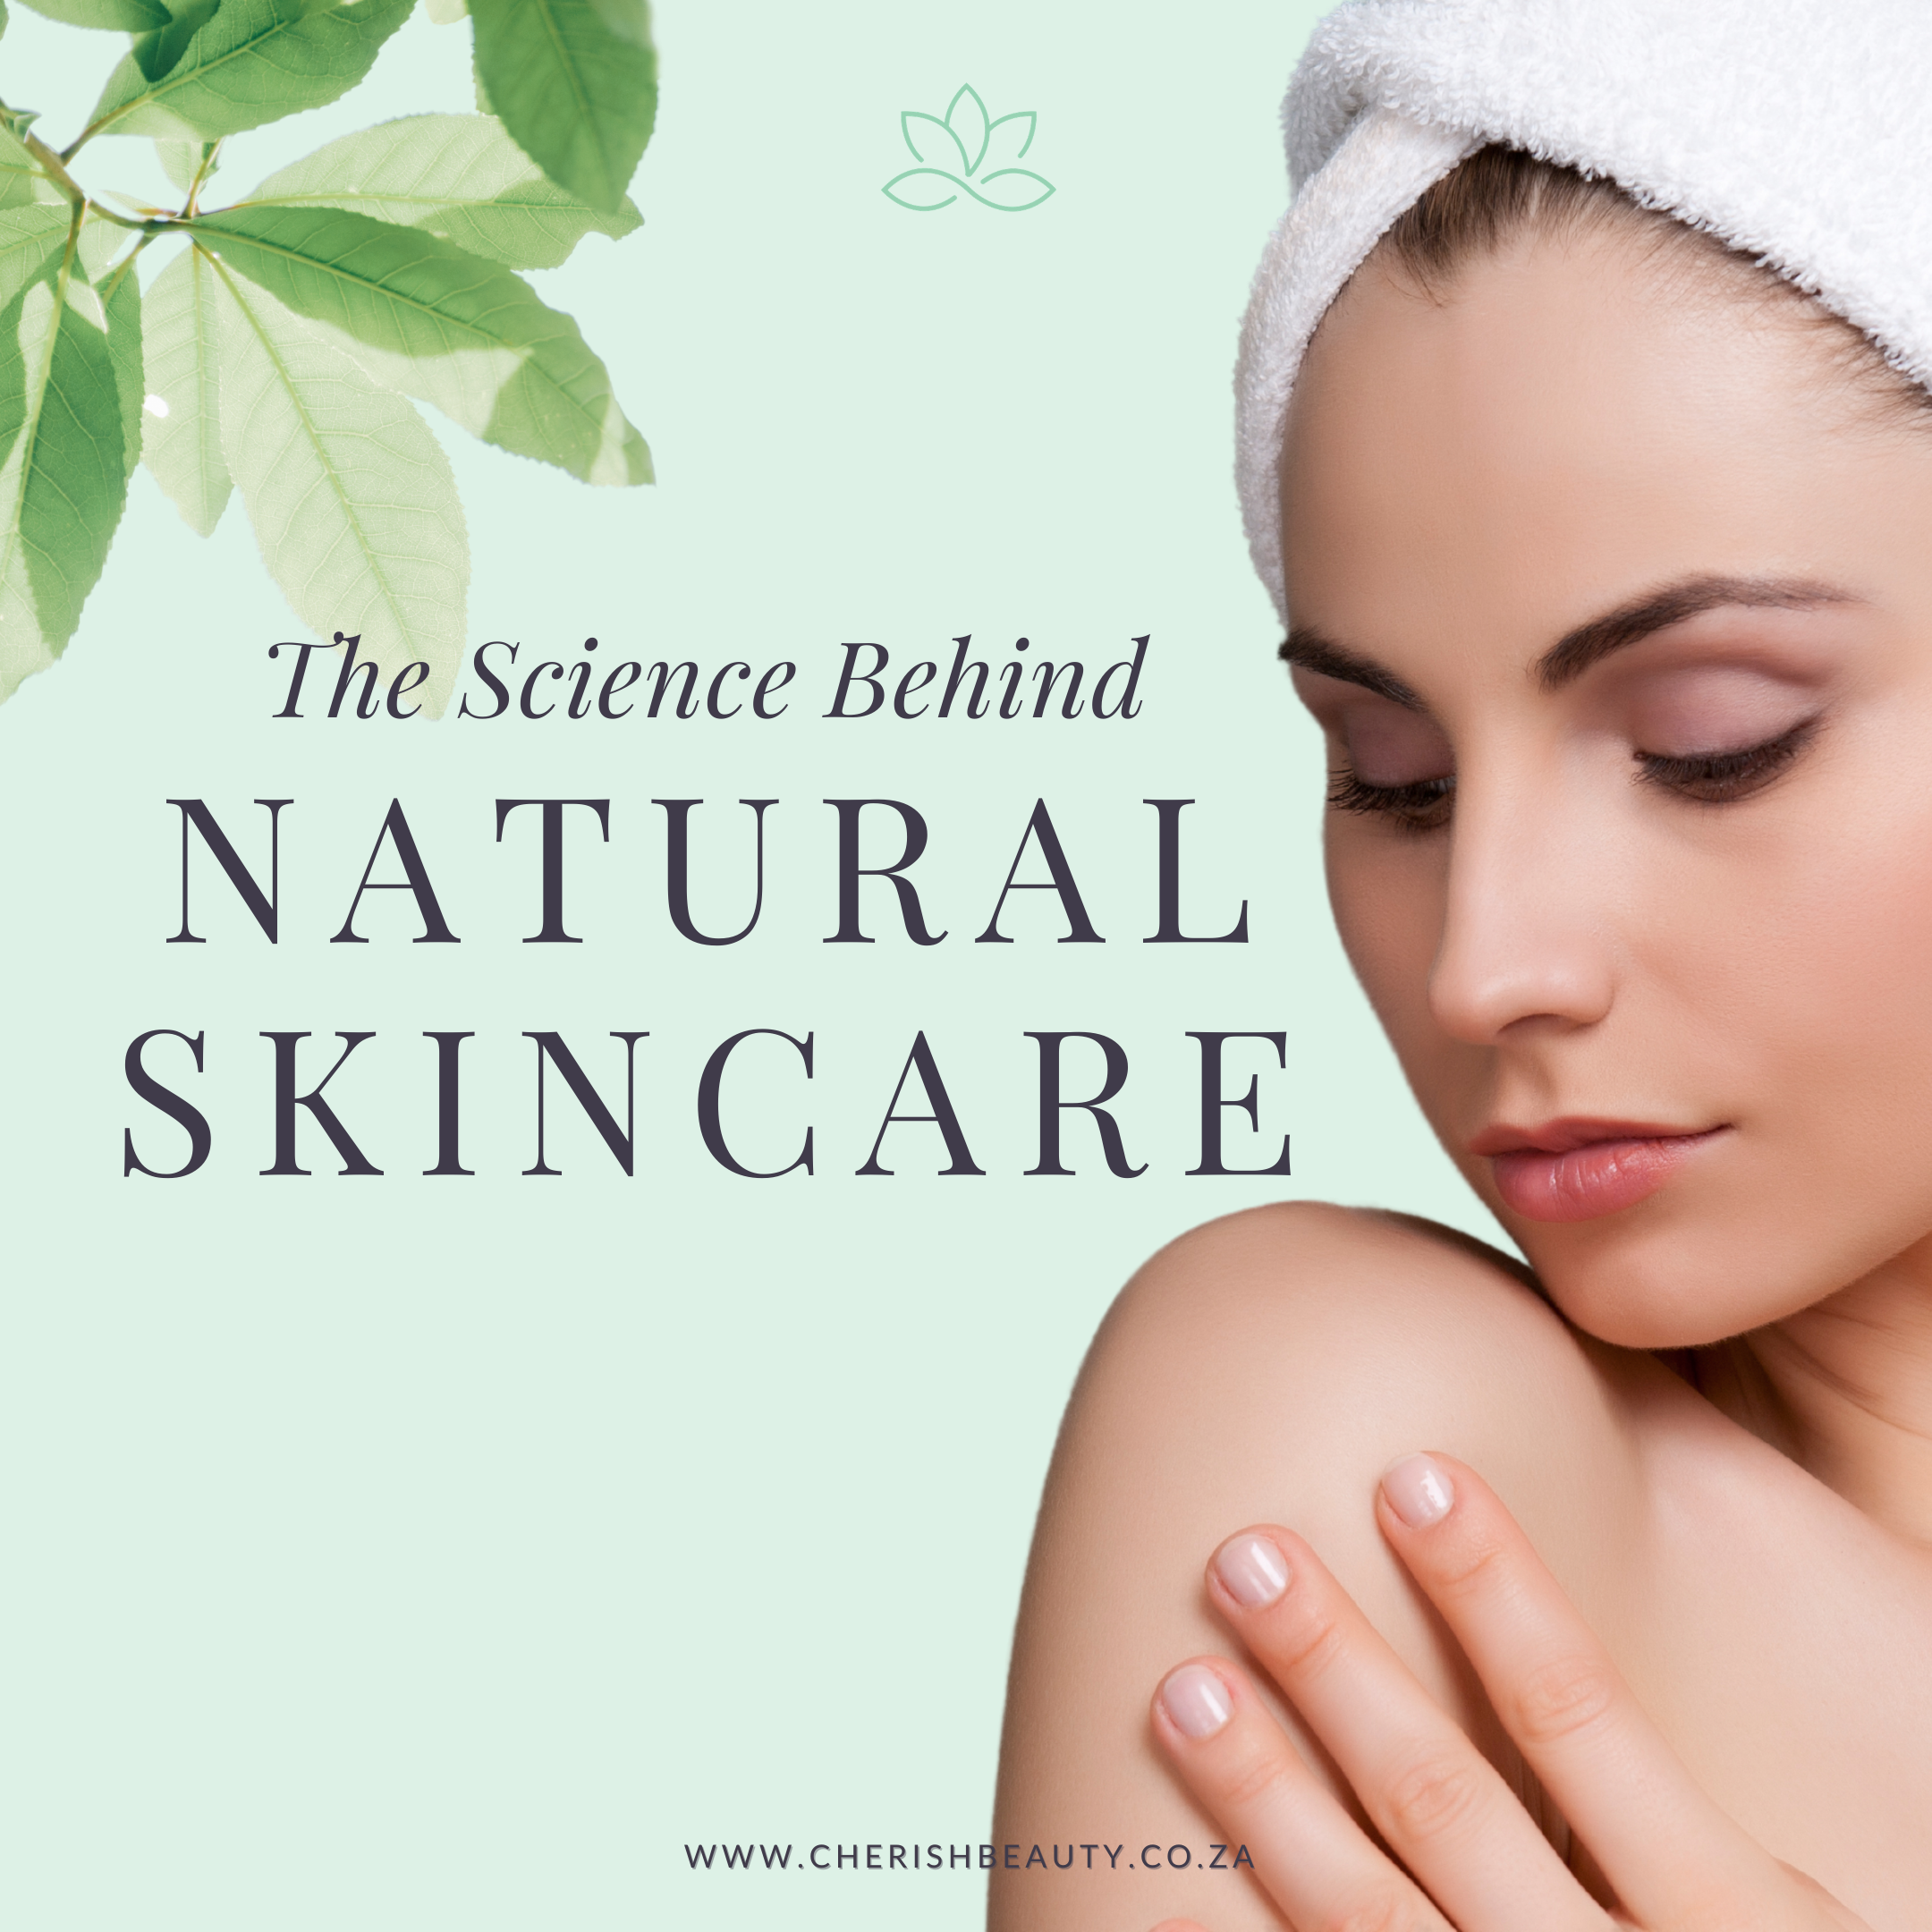 The science behind natural skincare header image. beautiful lady touching skin